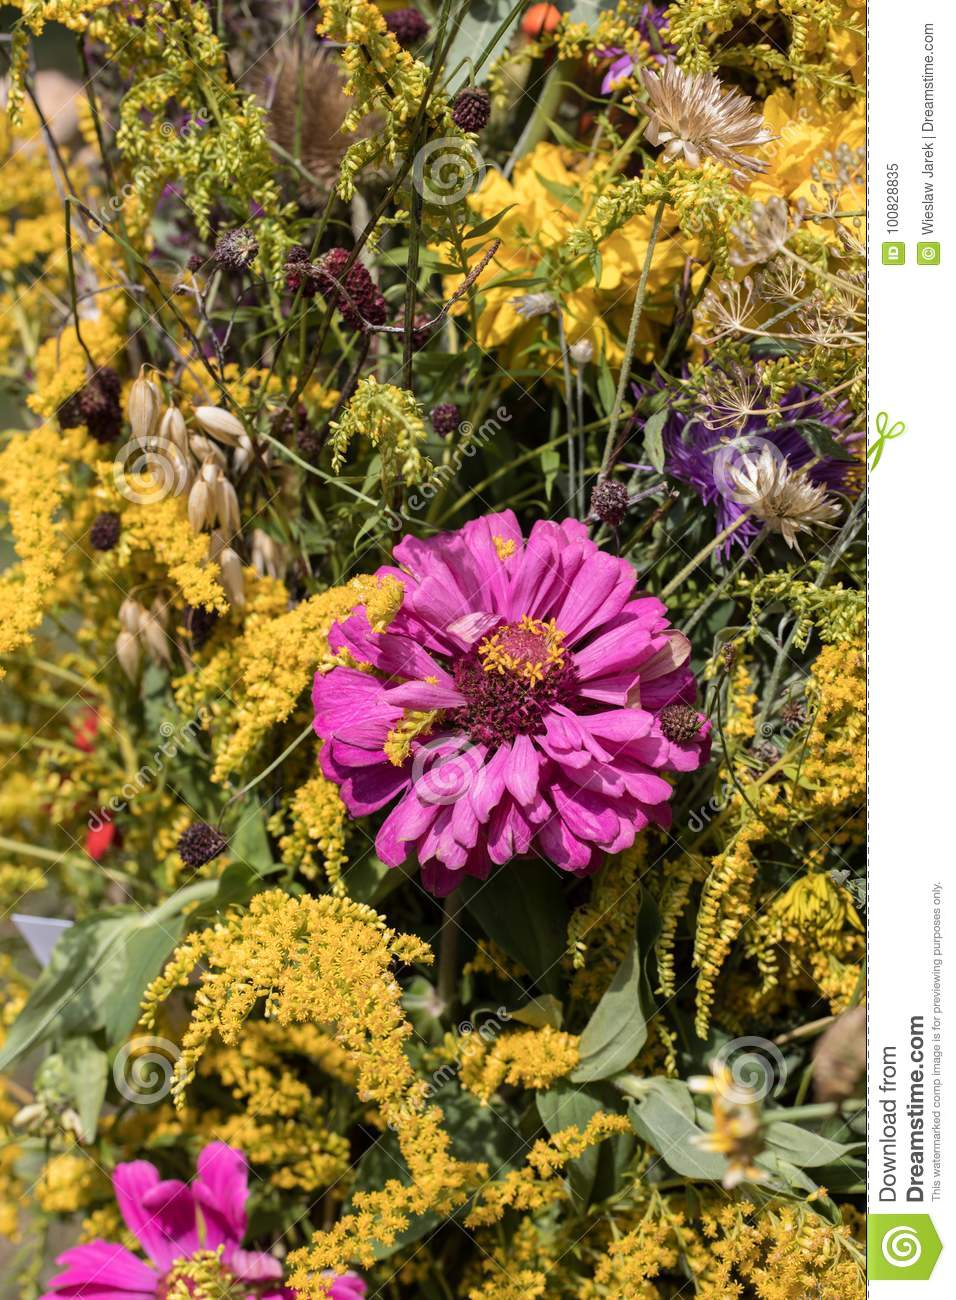 Beautiful Bouquets From Flowers And Herbs Stock Image - Image of ...